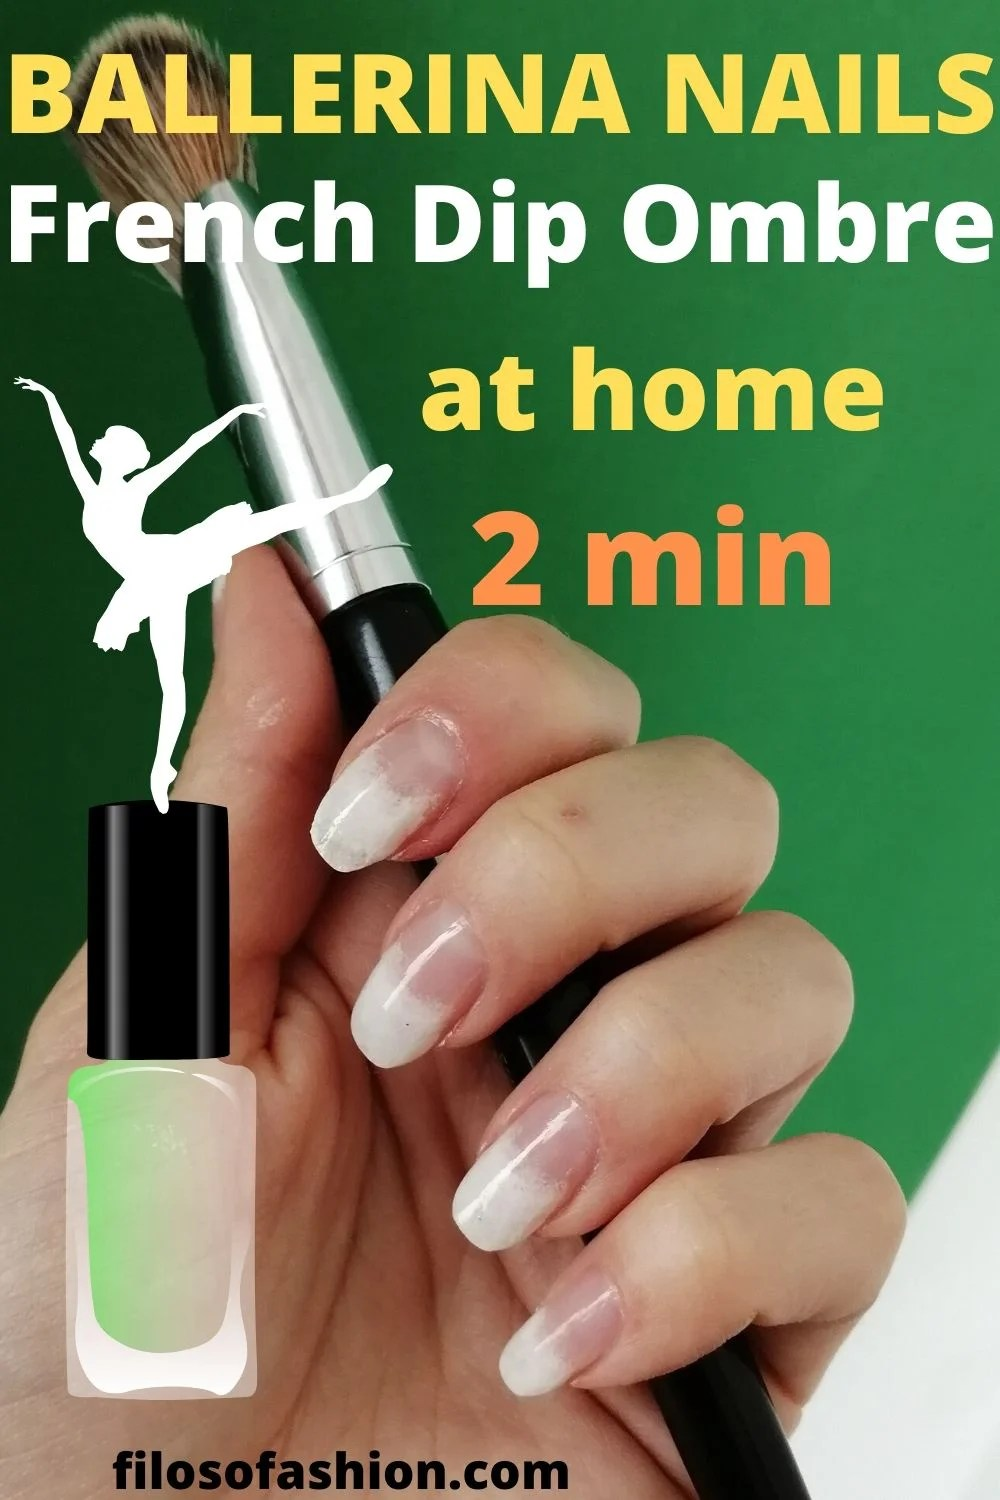 French Ombre Nails Ballerina Shape Nails At Home